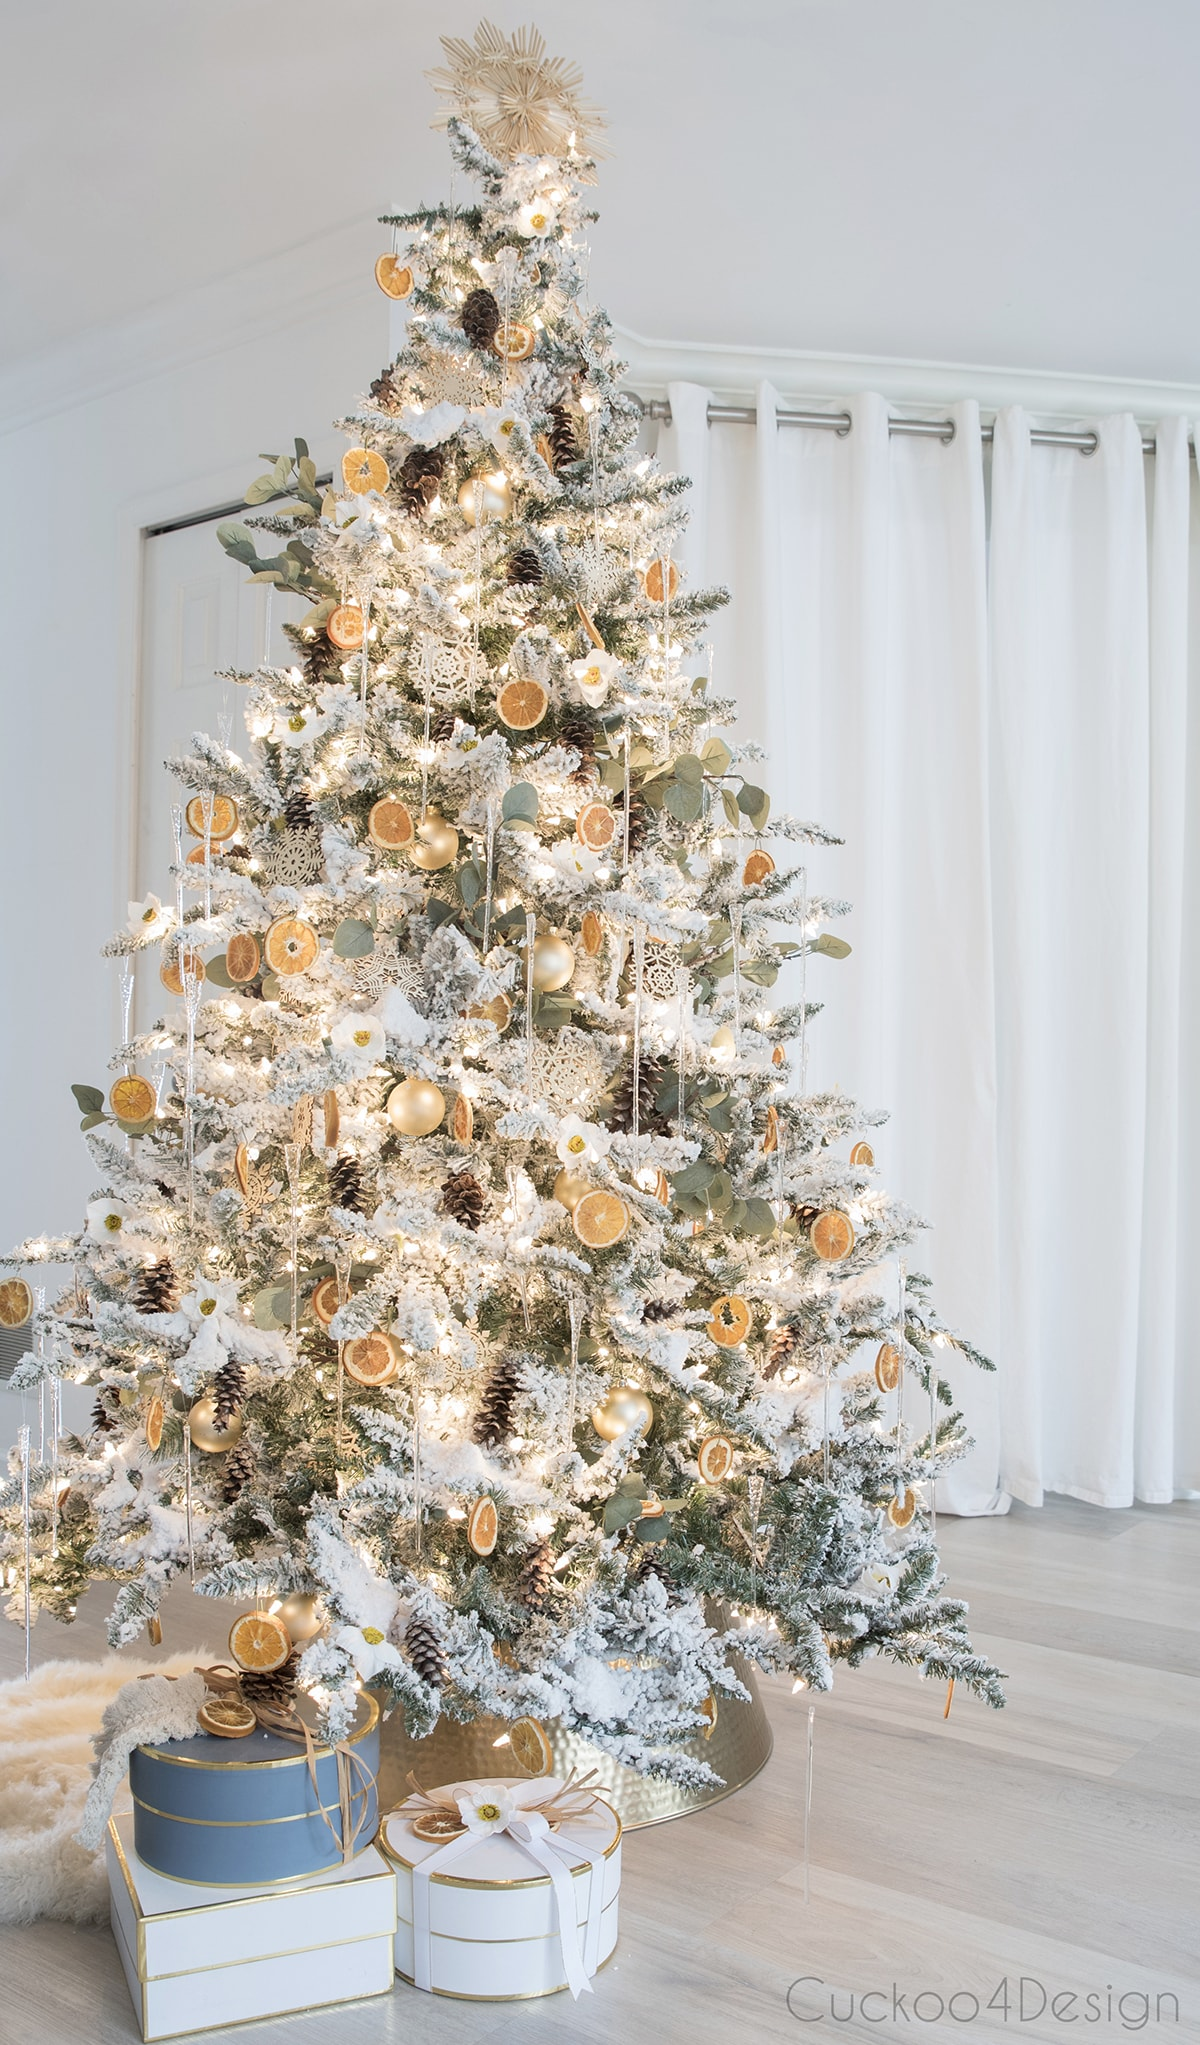 German Christmas tree decor with a modern twist